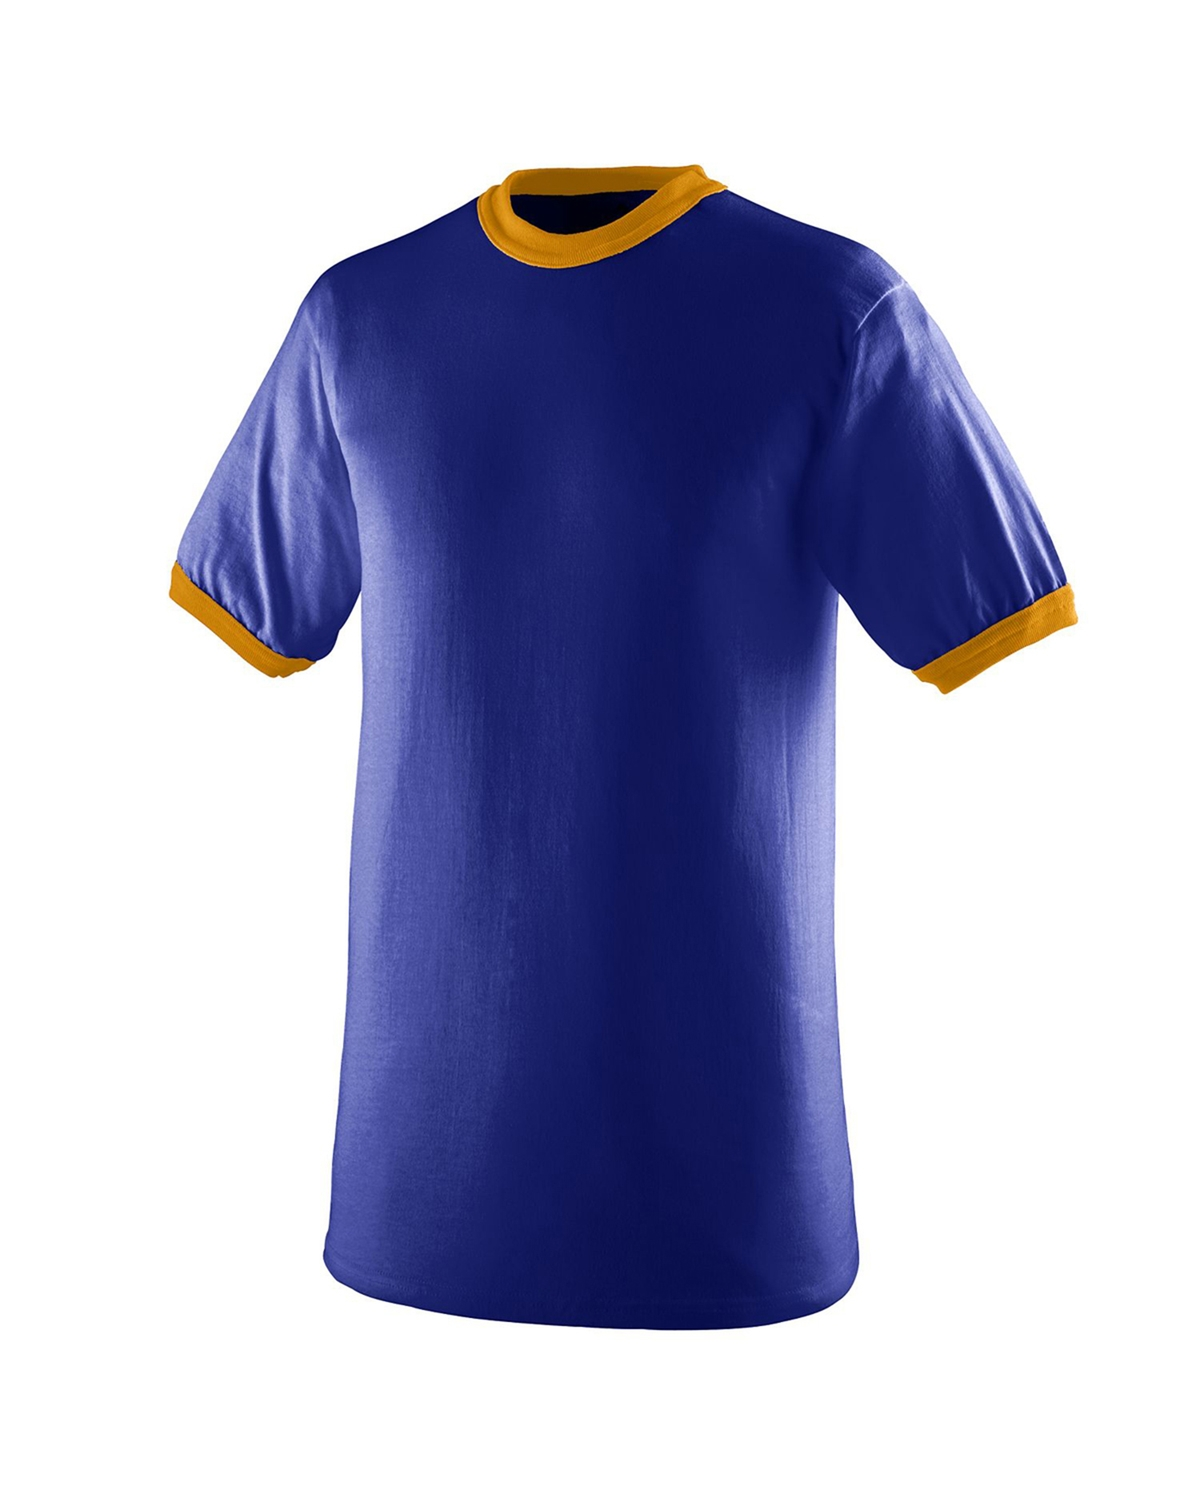 click to view Purple/Gold